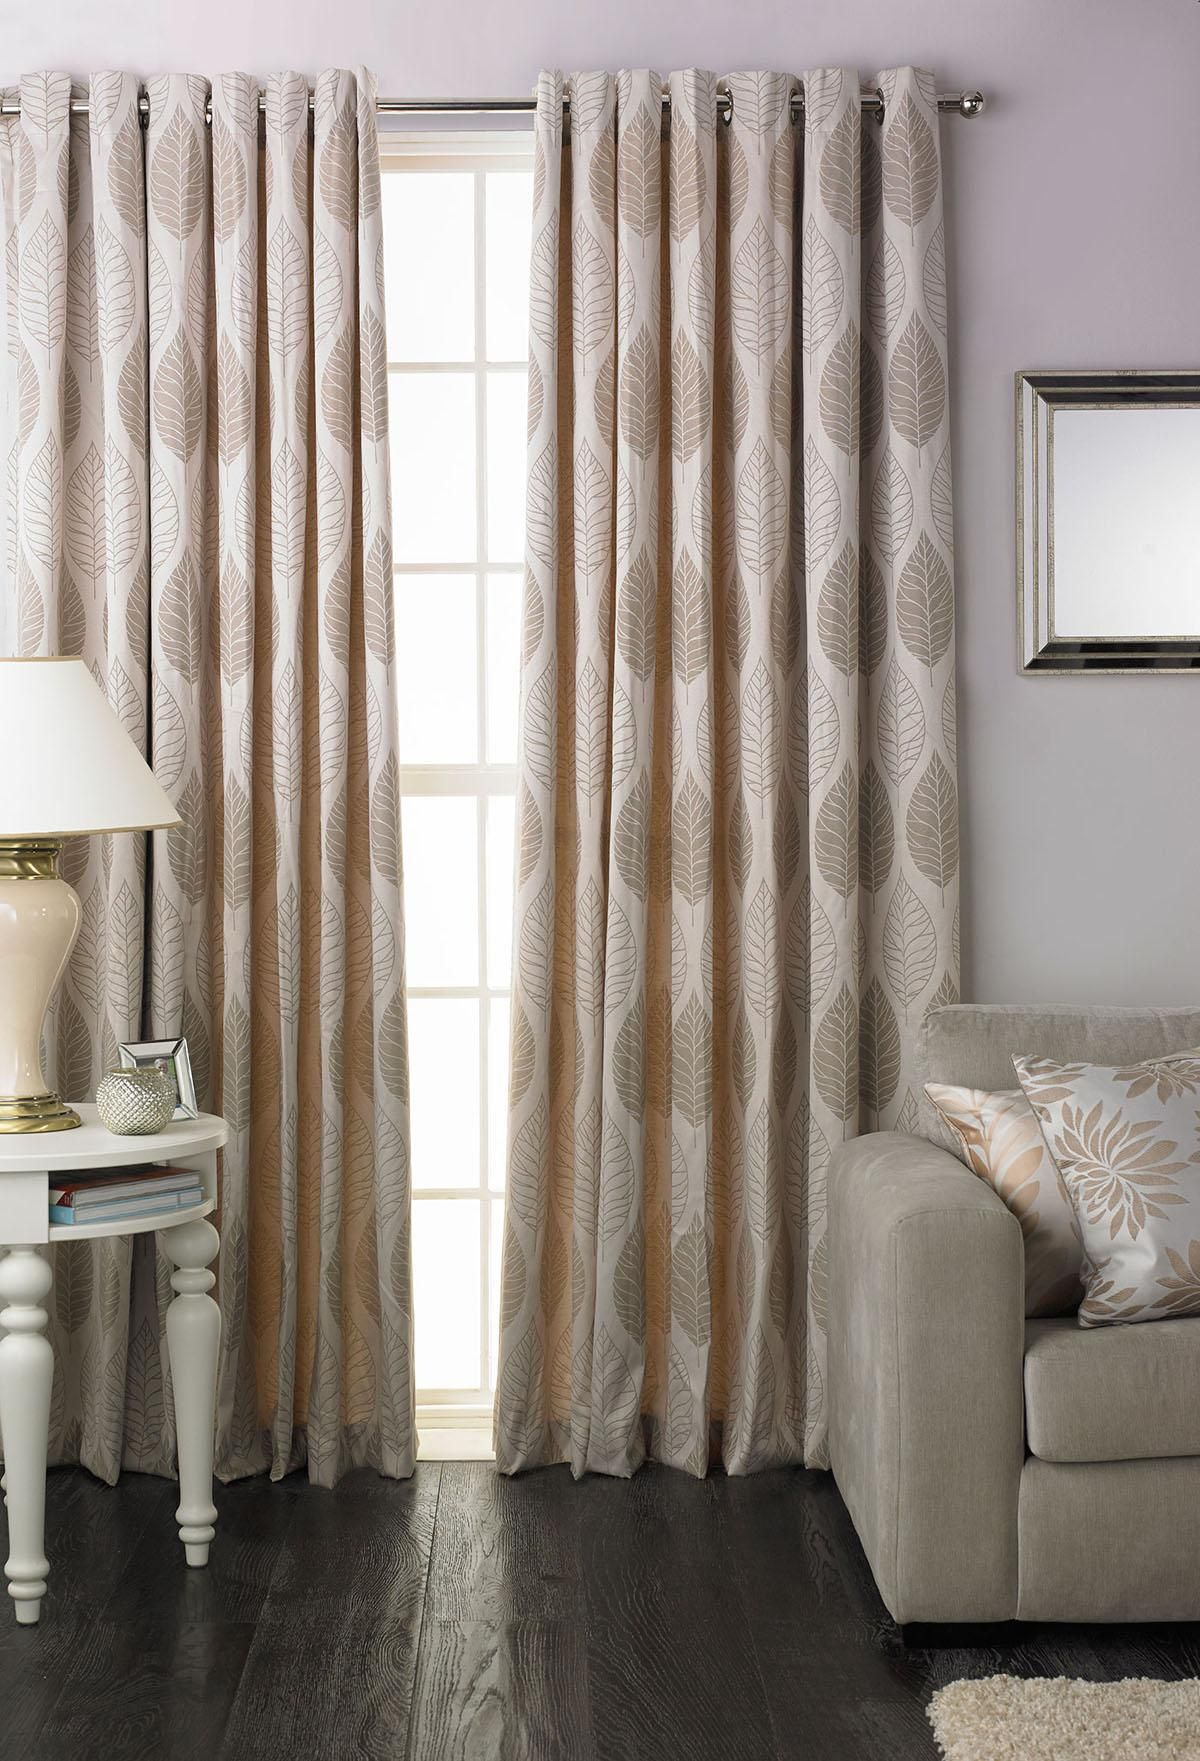 house fabric mink eyelet ready crushed made product curtain velvet curtains of